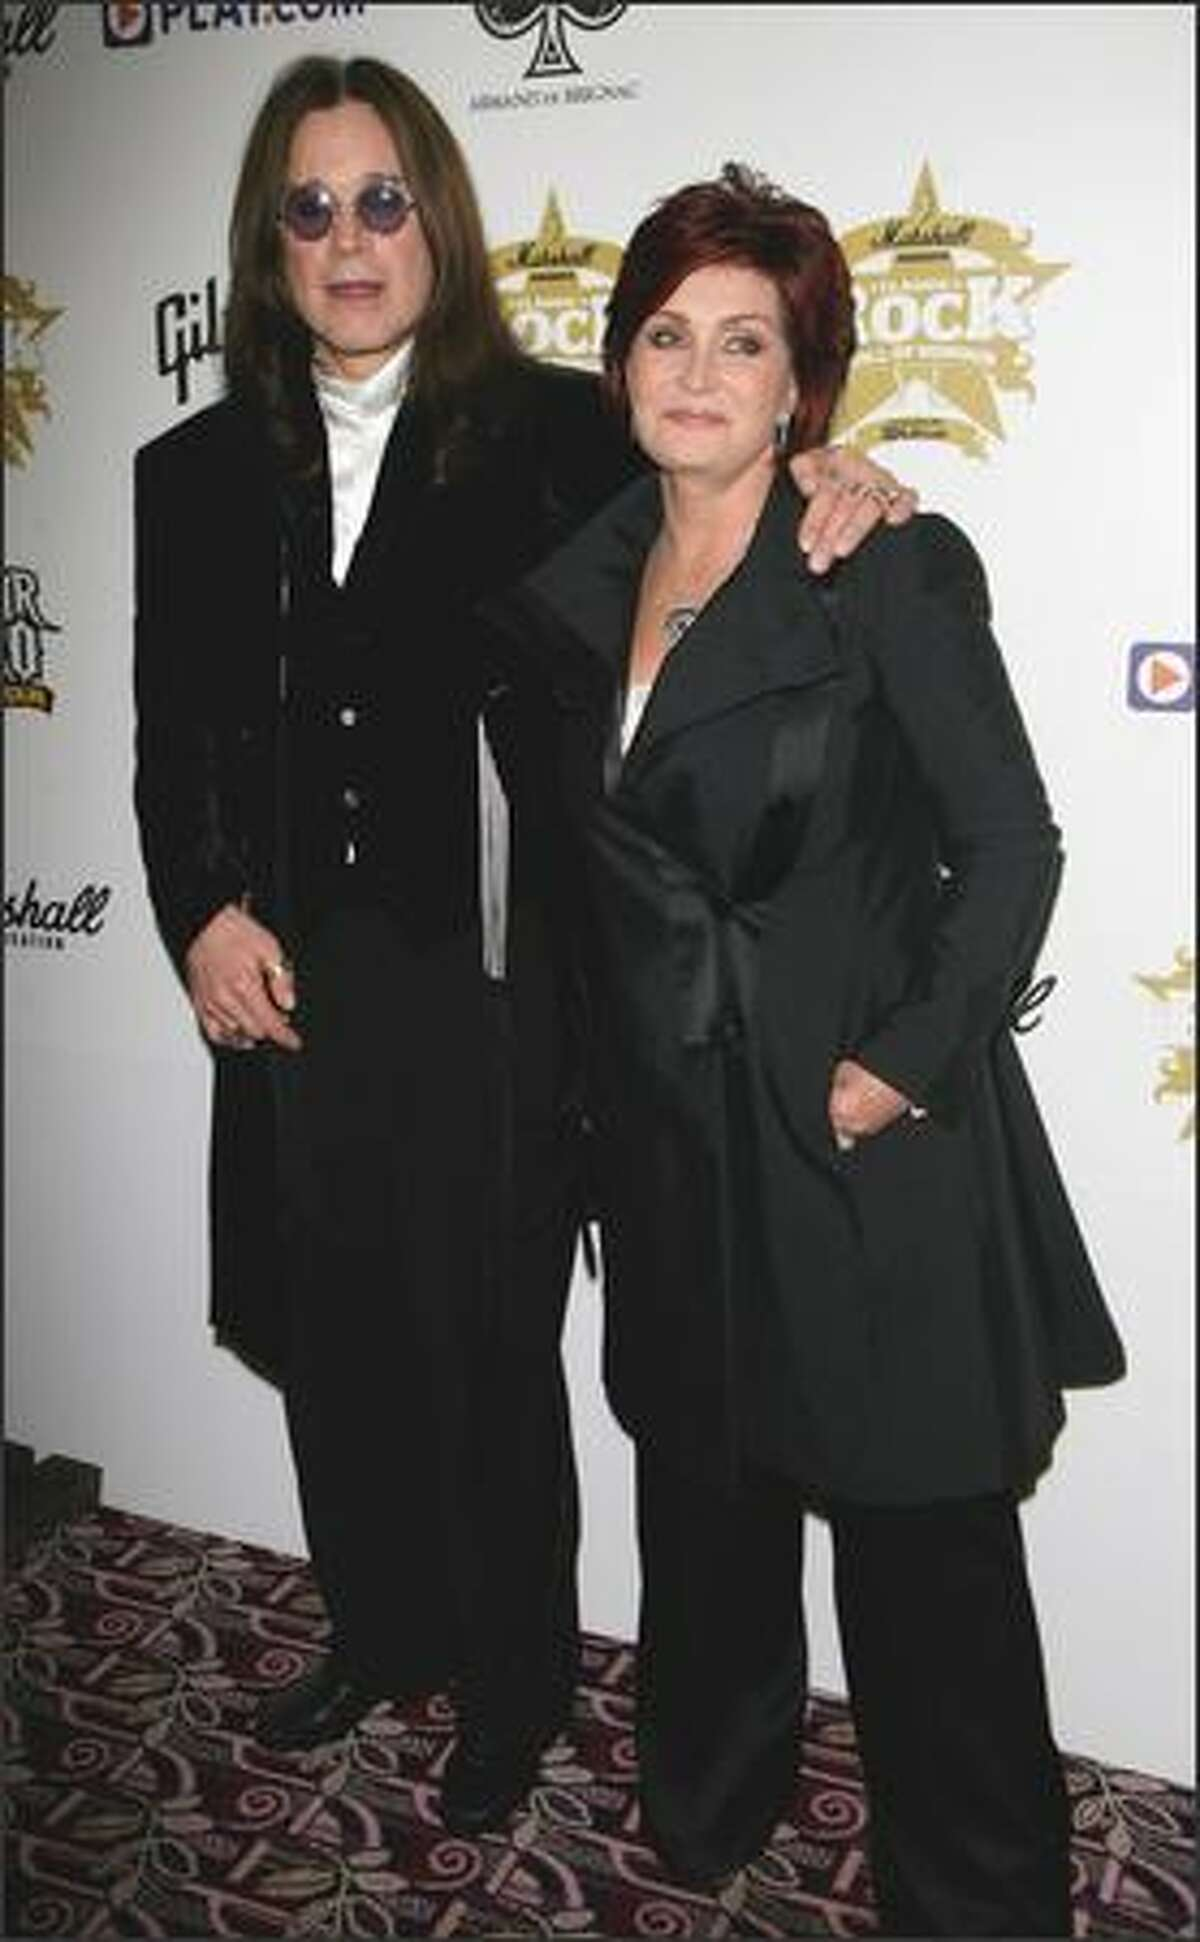 Ozzy Osbourne and Sharon Osbourne arrive for the Classic Rock Roll of Honour at the Park Lane Hotel on Monday in London.